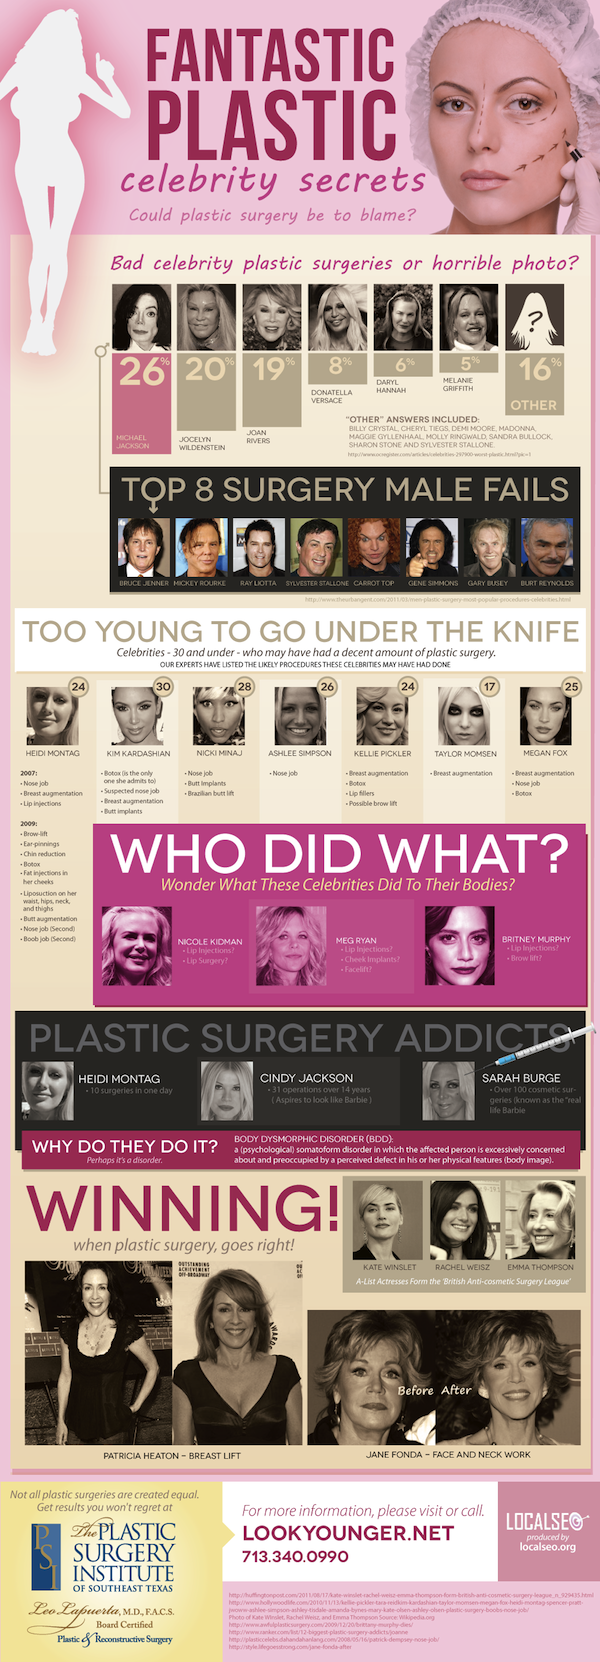 Houston Plastic Surgery Fantastic Plastic [Infographic]